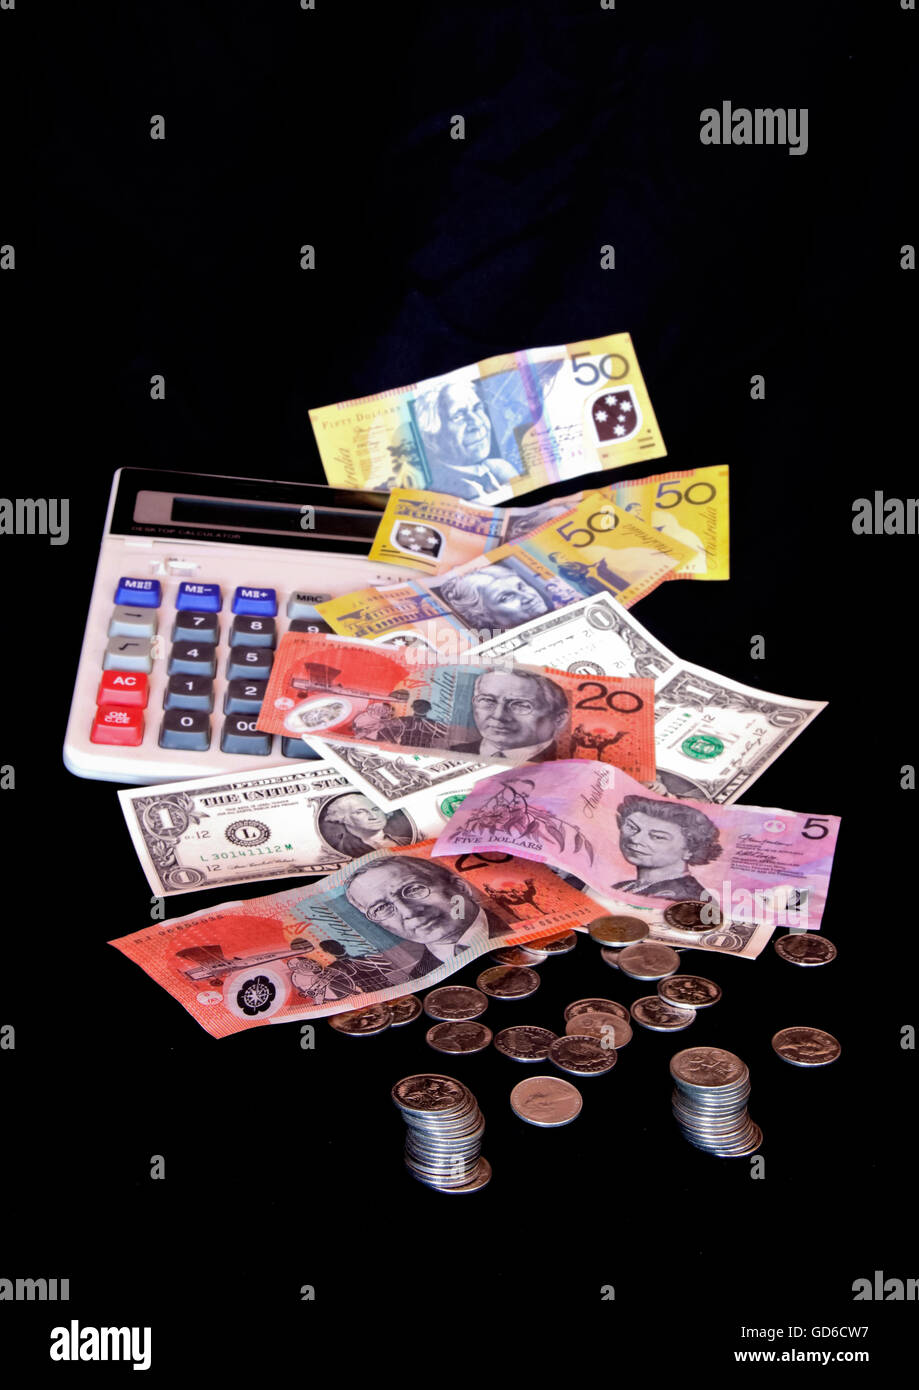 Coins and banknotes isolated on black - Stock Image